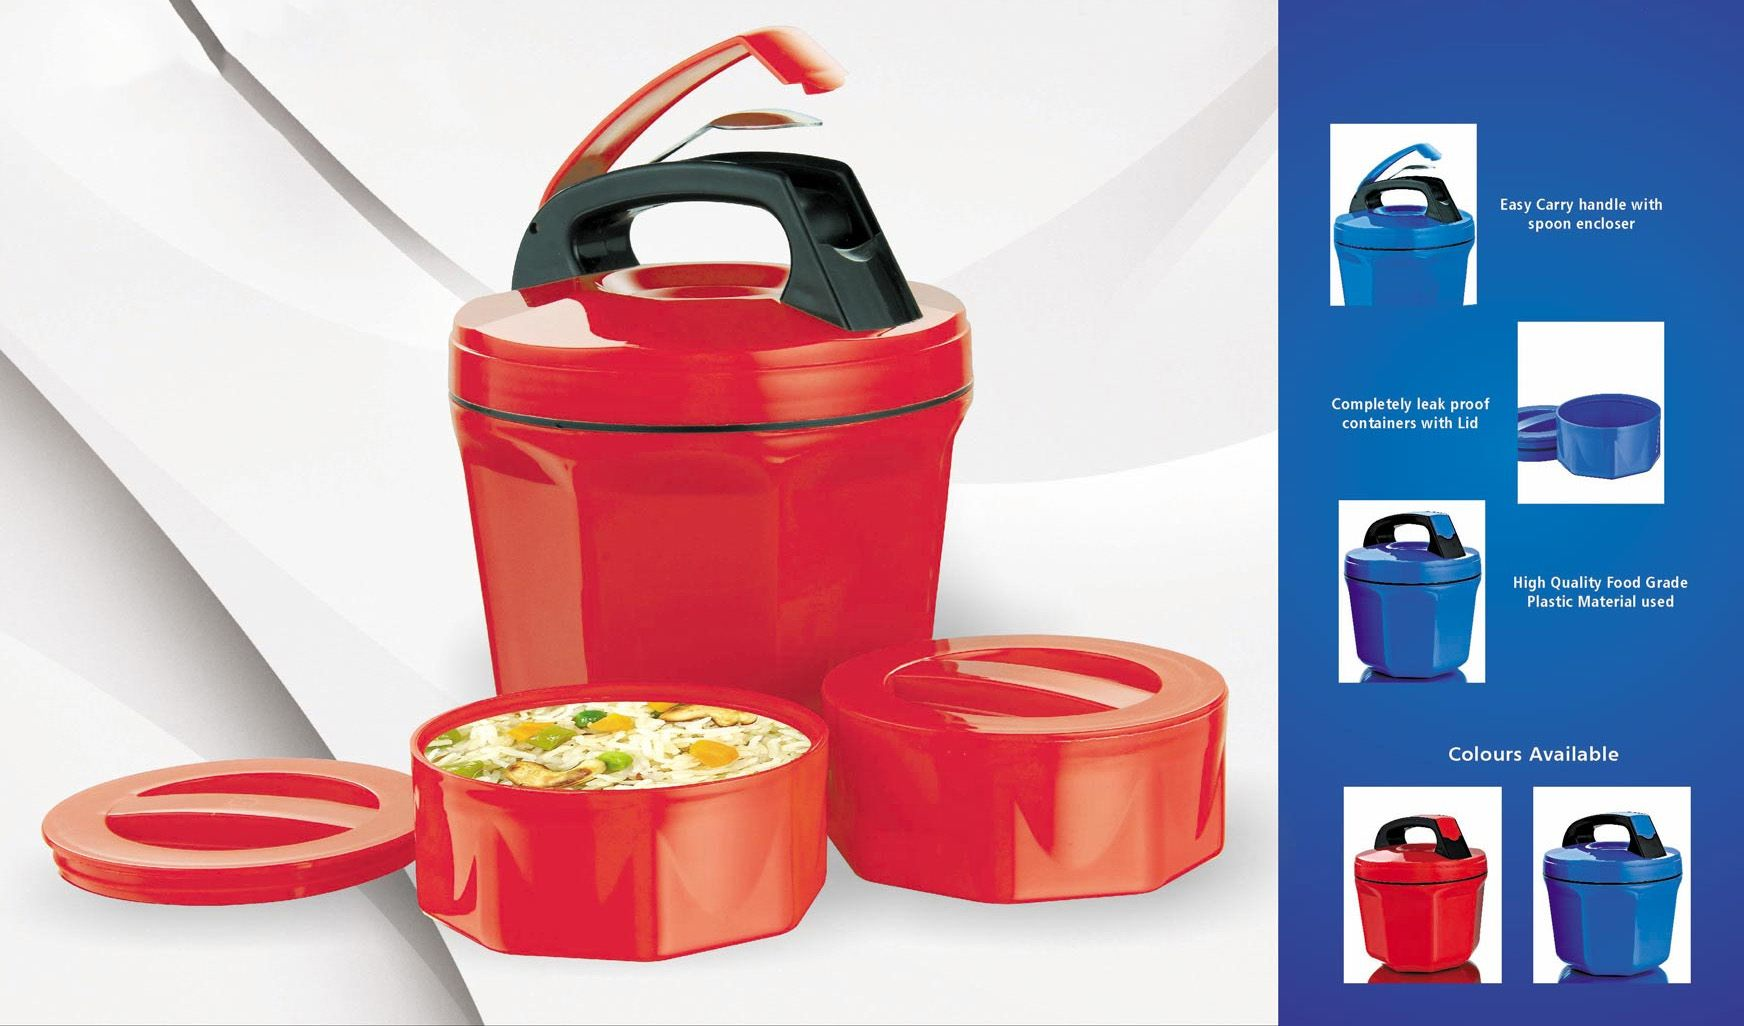 Power Plus Octomeal Lunch Box - 2 Containers (Plastic) H85